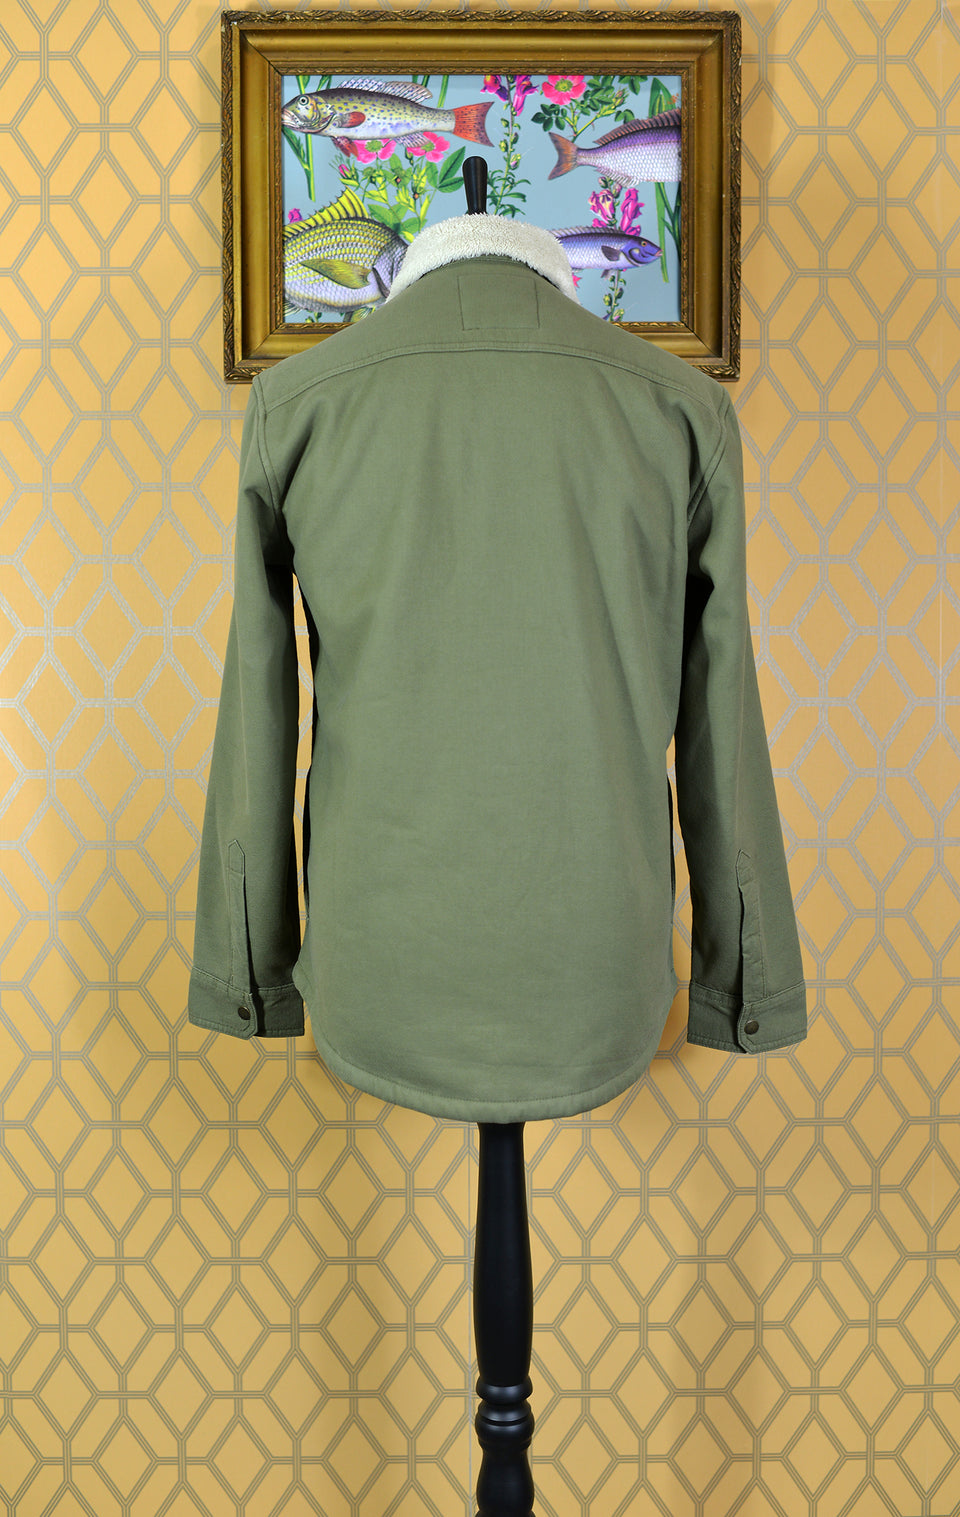 MARKS & SPENCER Men's Khaki Green Faux Fur Lined Overshirt/Jacket, Size S. Pre-loved.